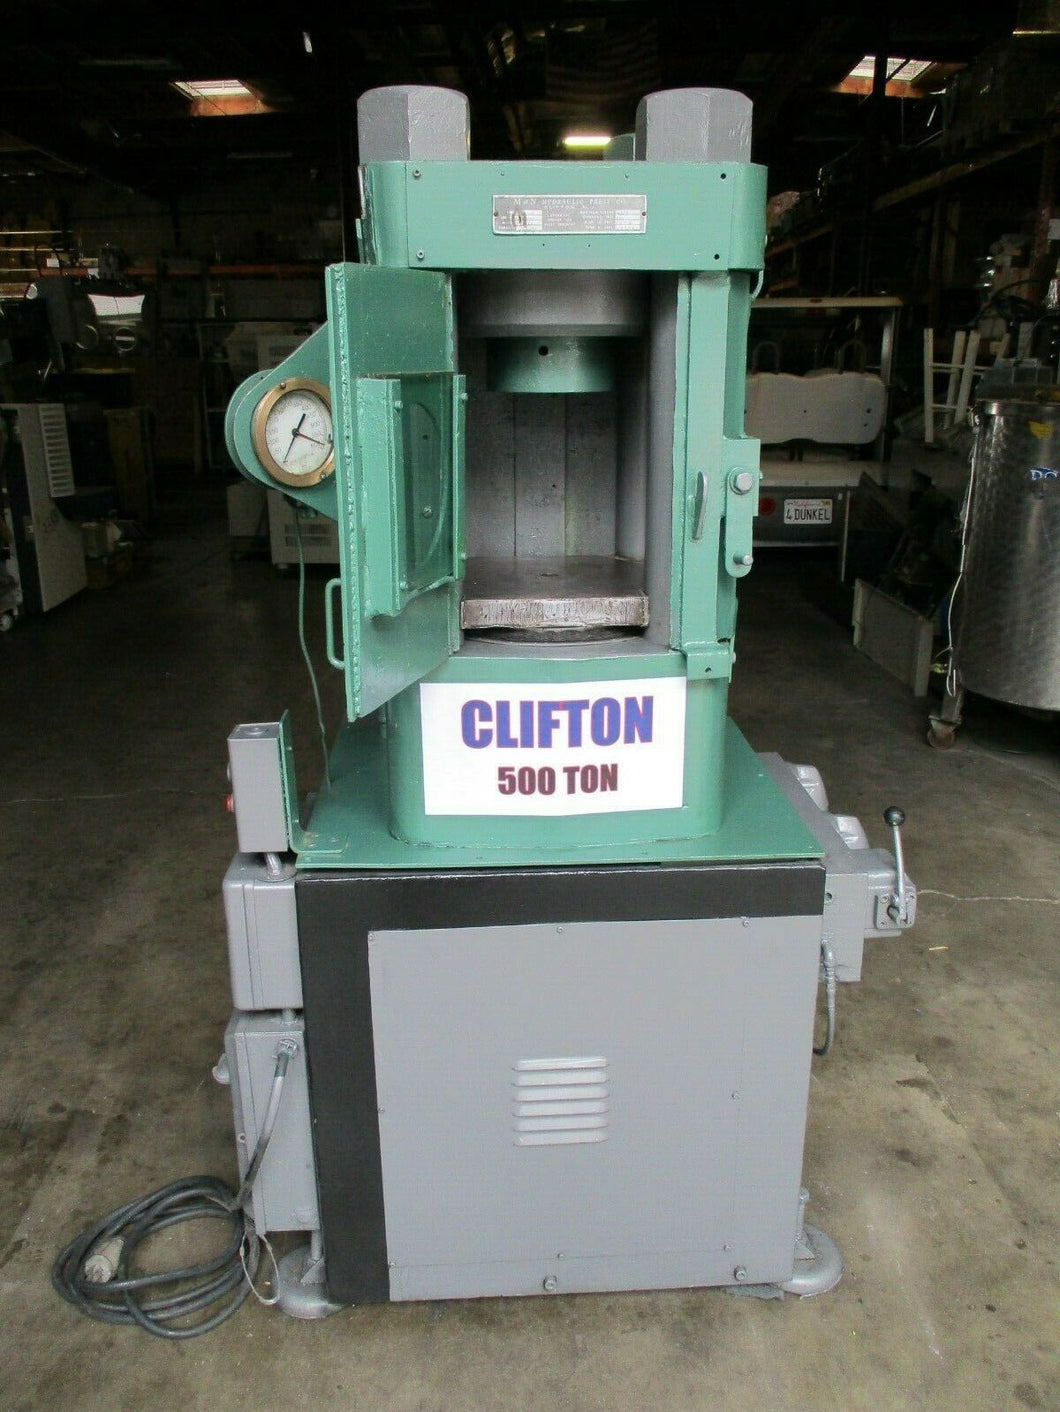 500 TON CLIFTON / M & N HYDRAULIC HOBBING PRESS / COINING PRESS